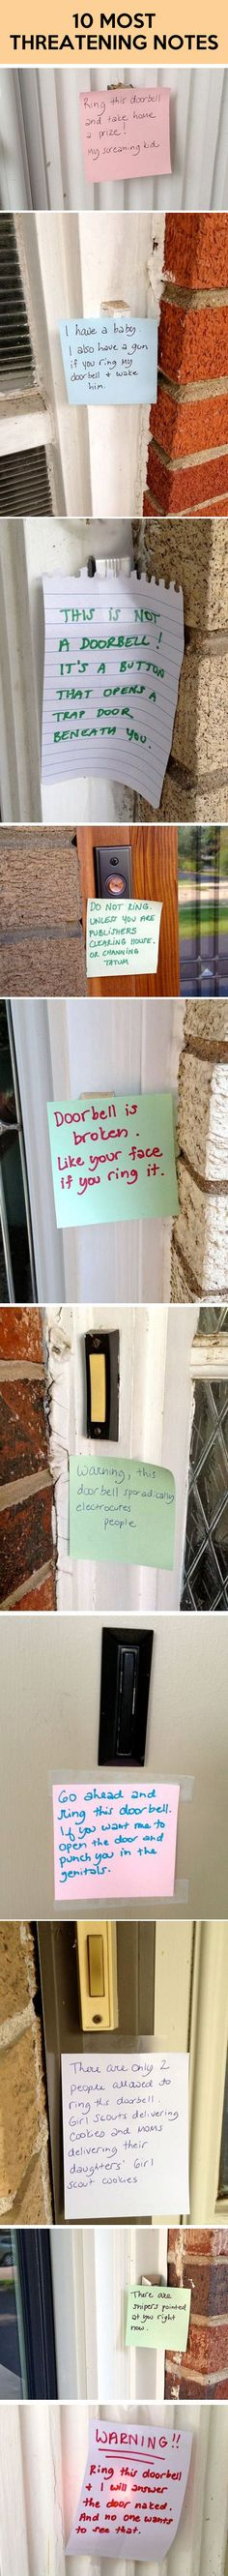 So...should I knock? - Imgur